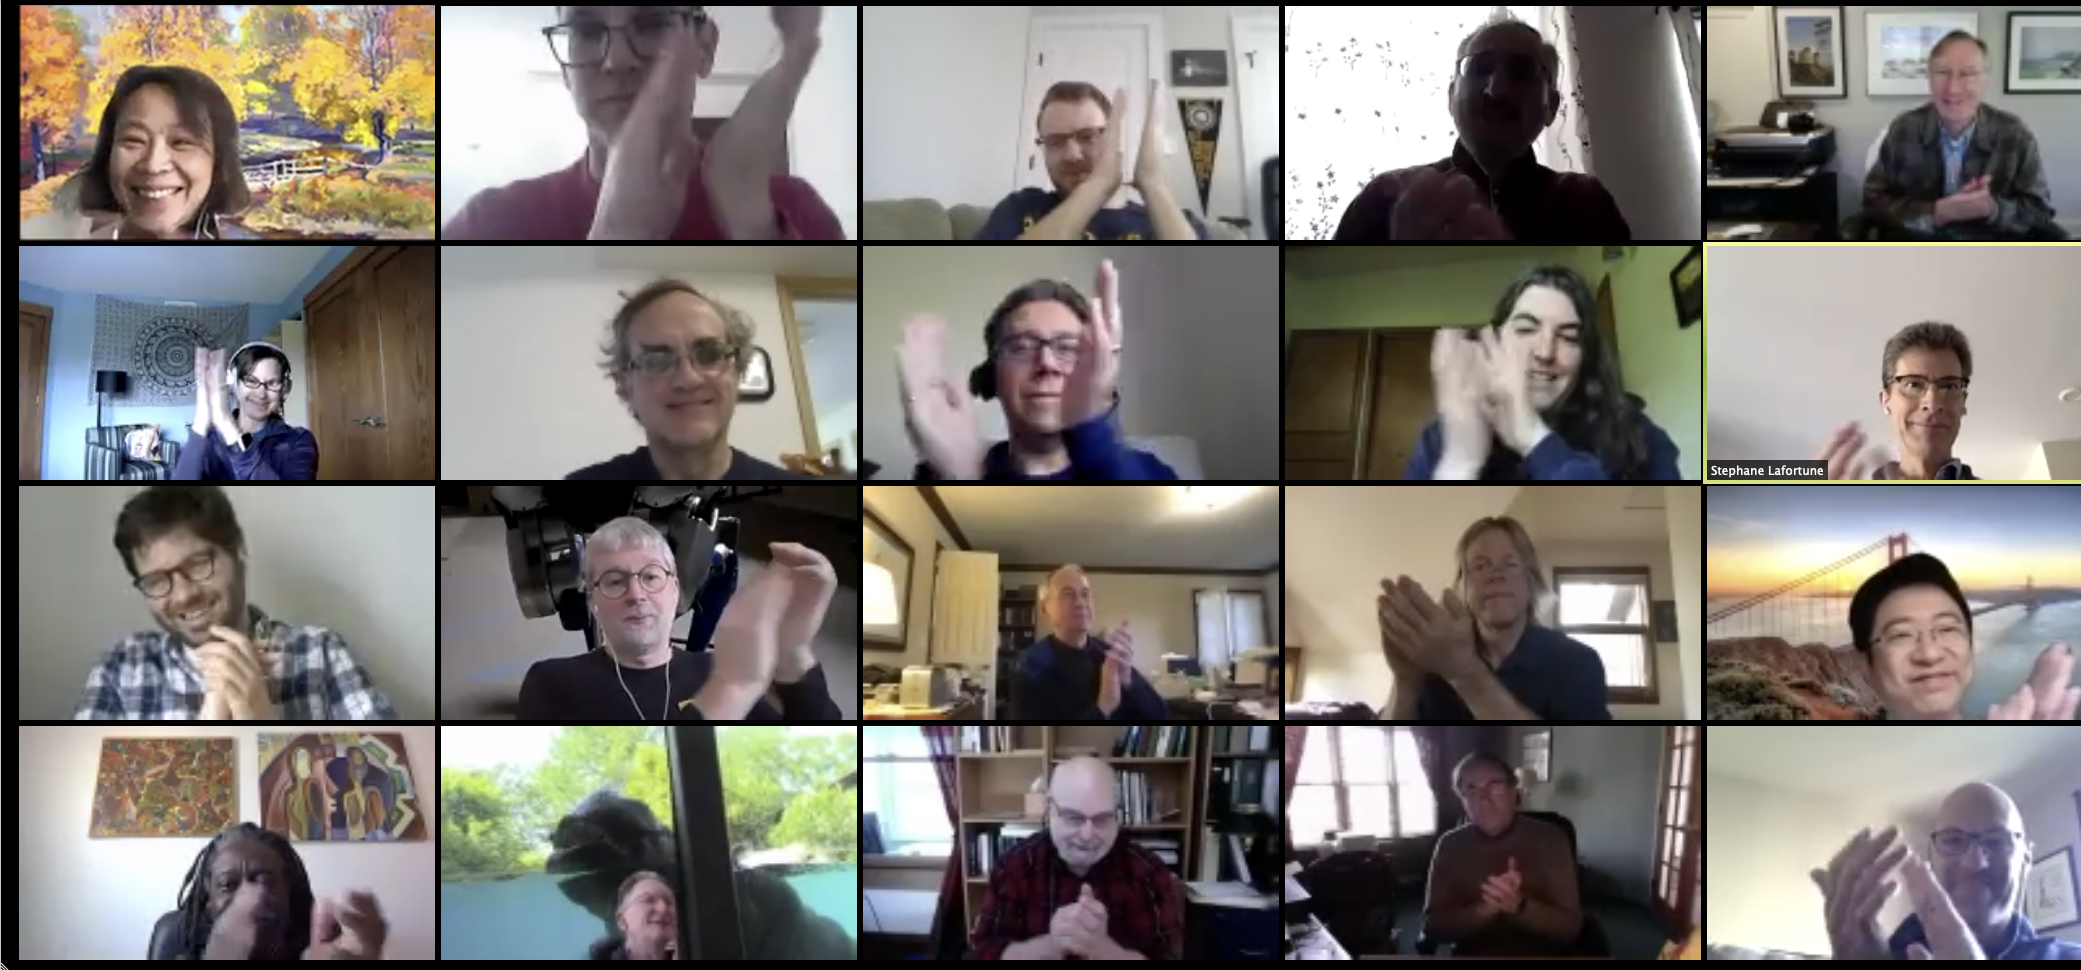 Professors congratulate Prof. Terry on Zoom